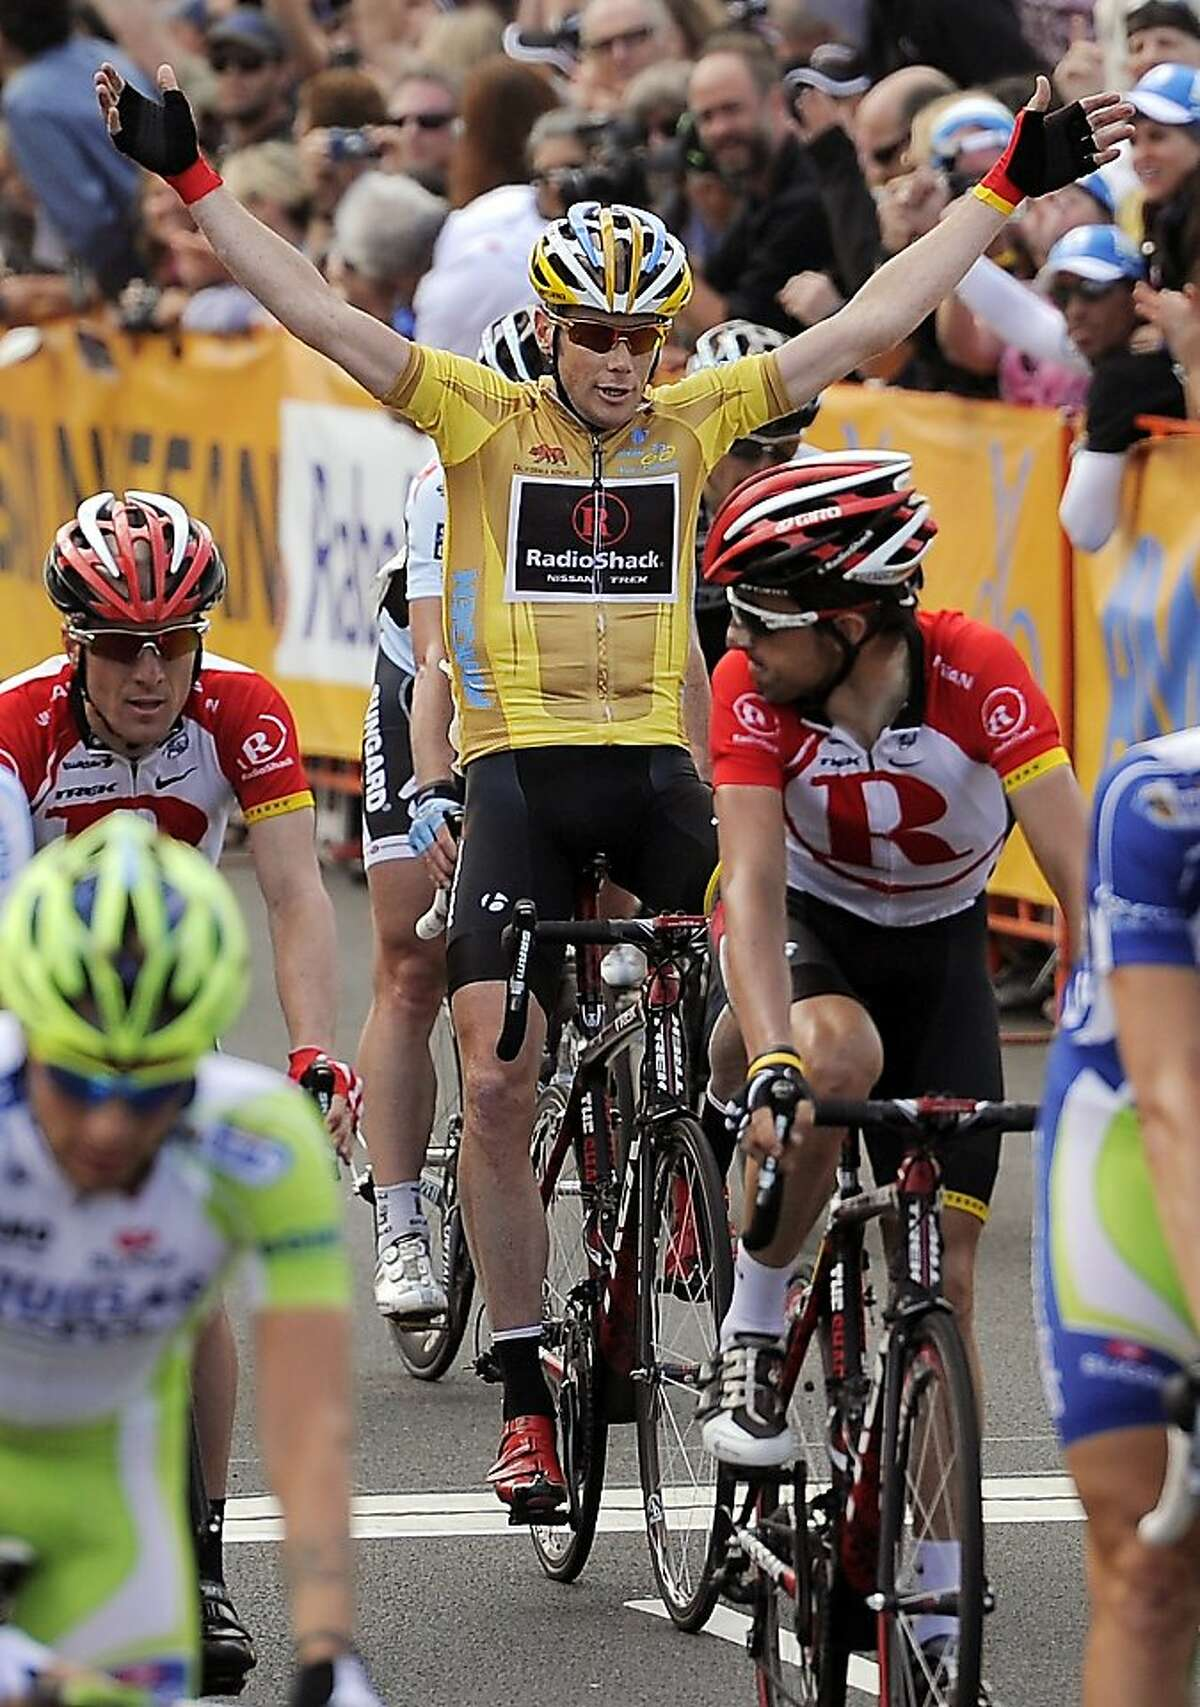 Chris Horner, center, celebrates as he crosses the finish line of the final stage of the Tour of California cycling race as teammates Levi Leipheimer, left, and Haimar Agirre Zubeldia, of Spain, ride nearby on Sunday, May 22, 2011, in Thousand Oaks, Calif. Horner won the race.